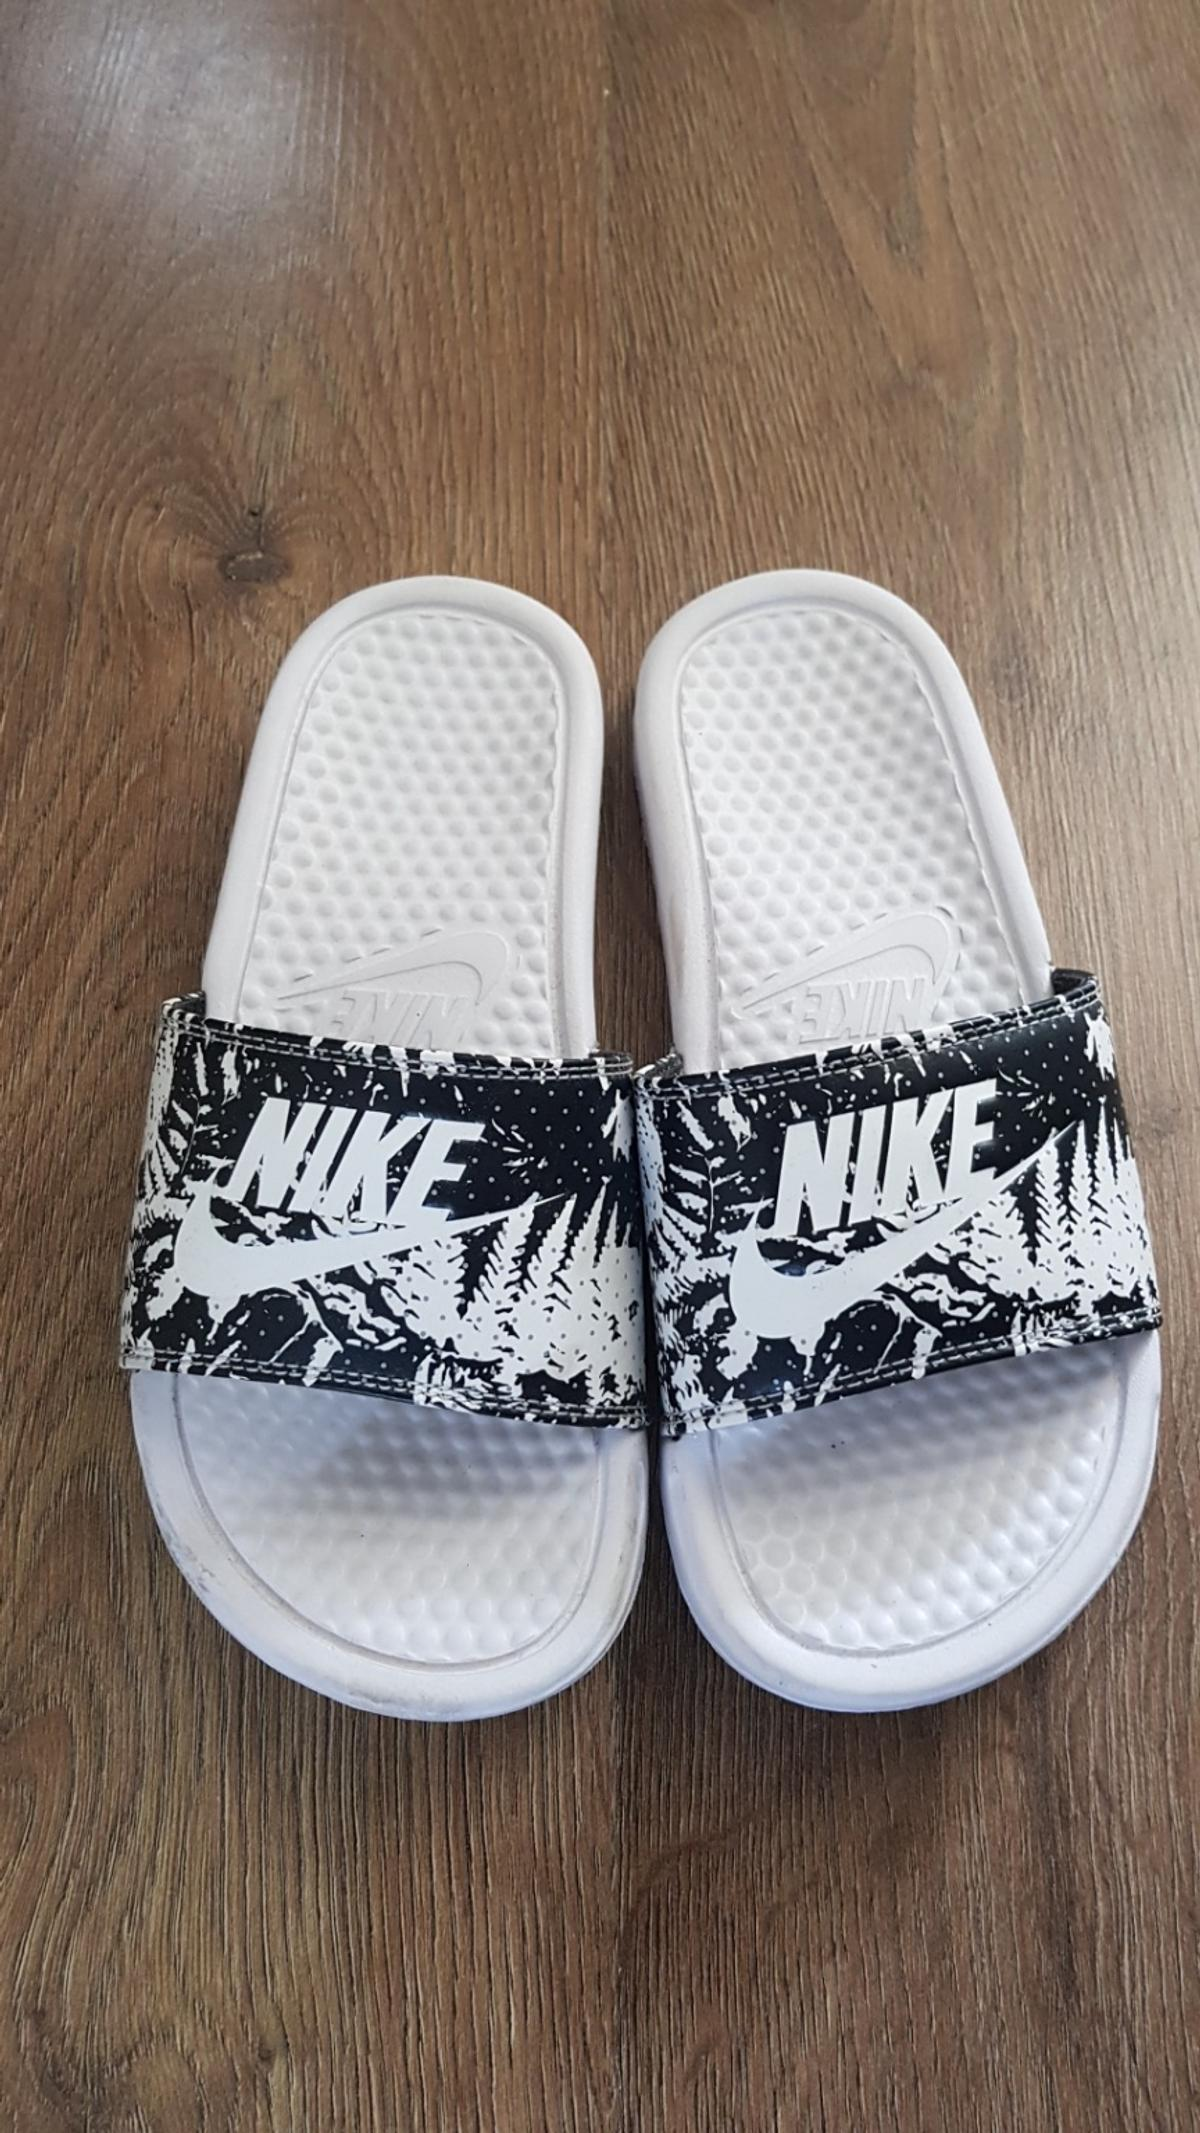 5b46dd4f0 nike slides size 4 in Royal Borough of Greenwich for £8.00 for sale ...